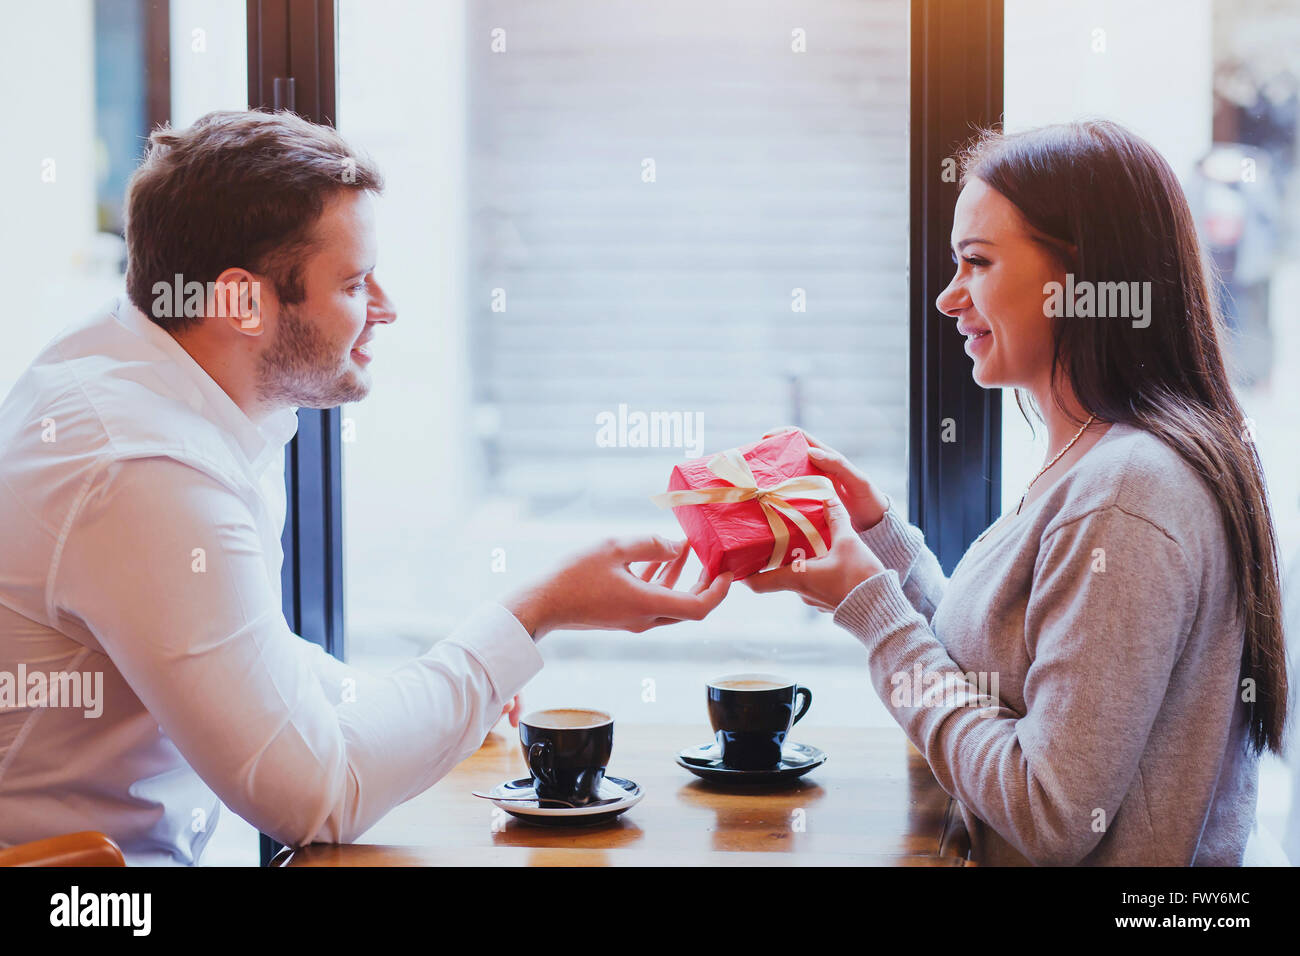 gift for valentines day, birthday or anniversary, man and woman in cafe, couple portrait - Stock Image